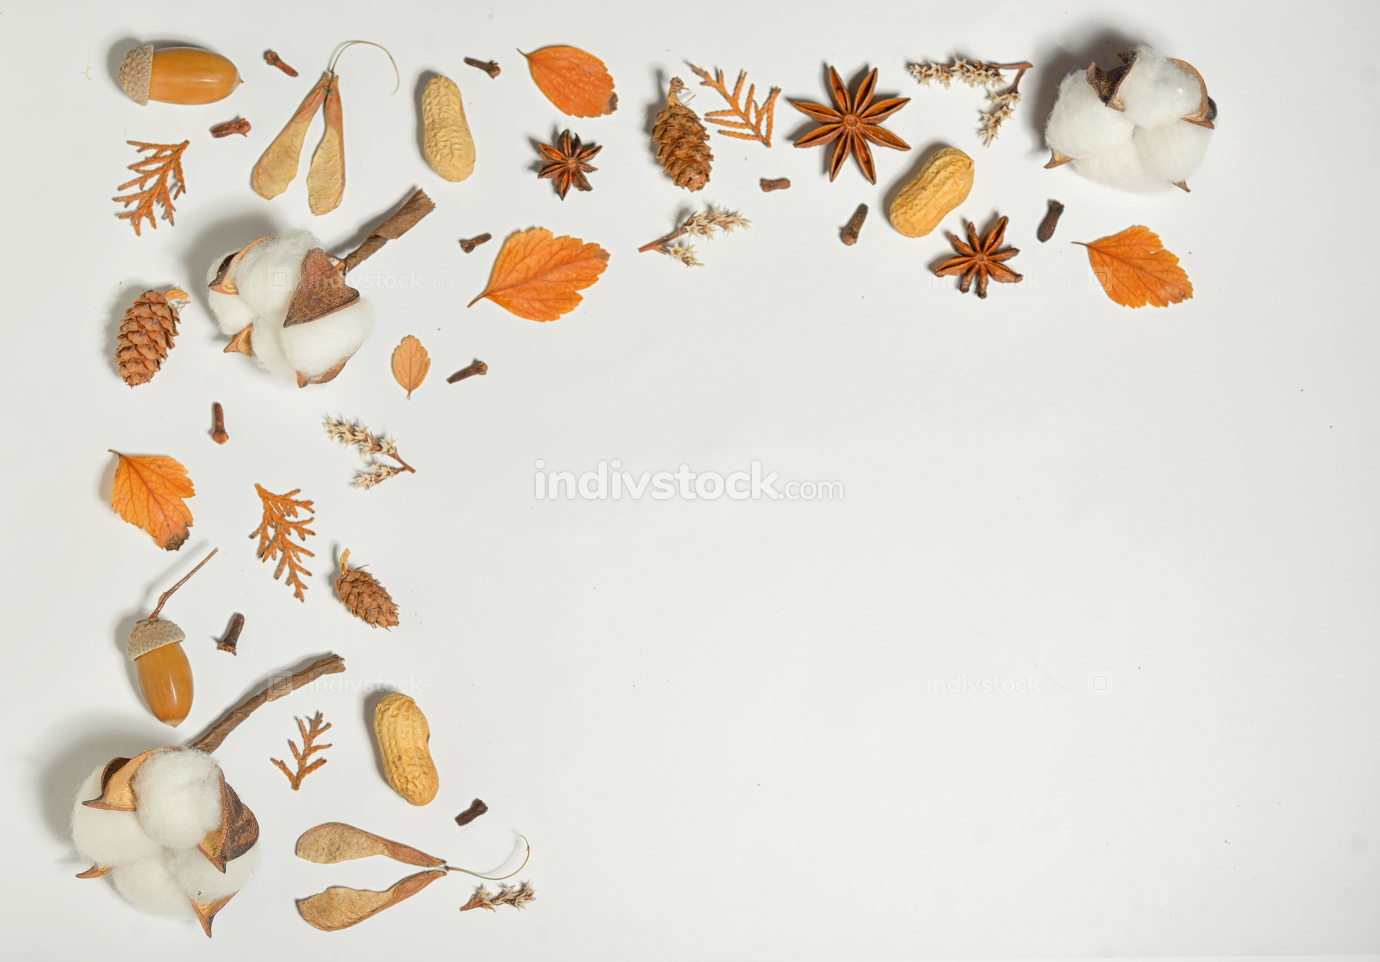 Autumn frame with cotton buds